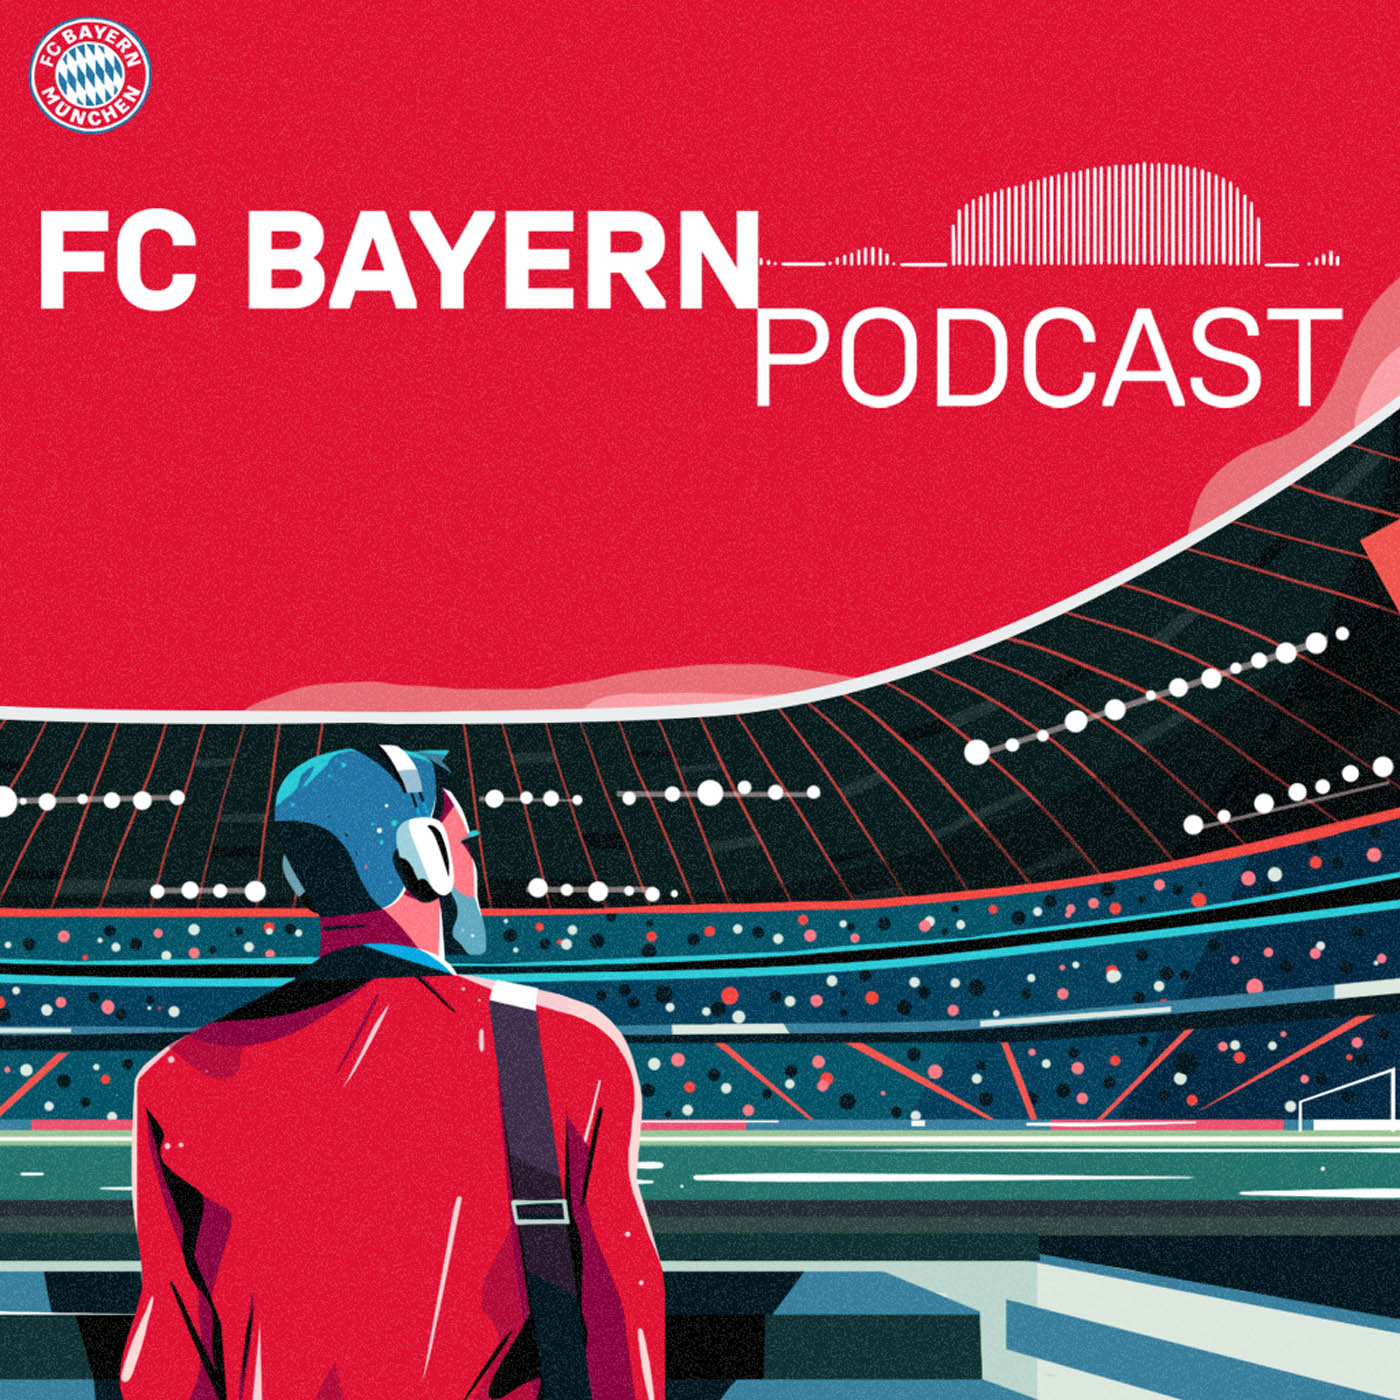 FC Bayern Podcast Trailer